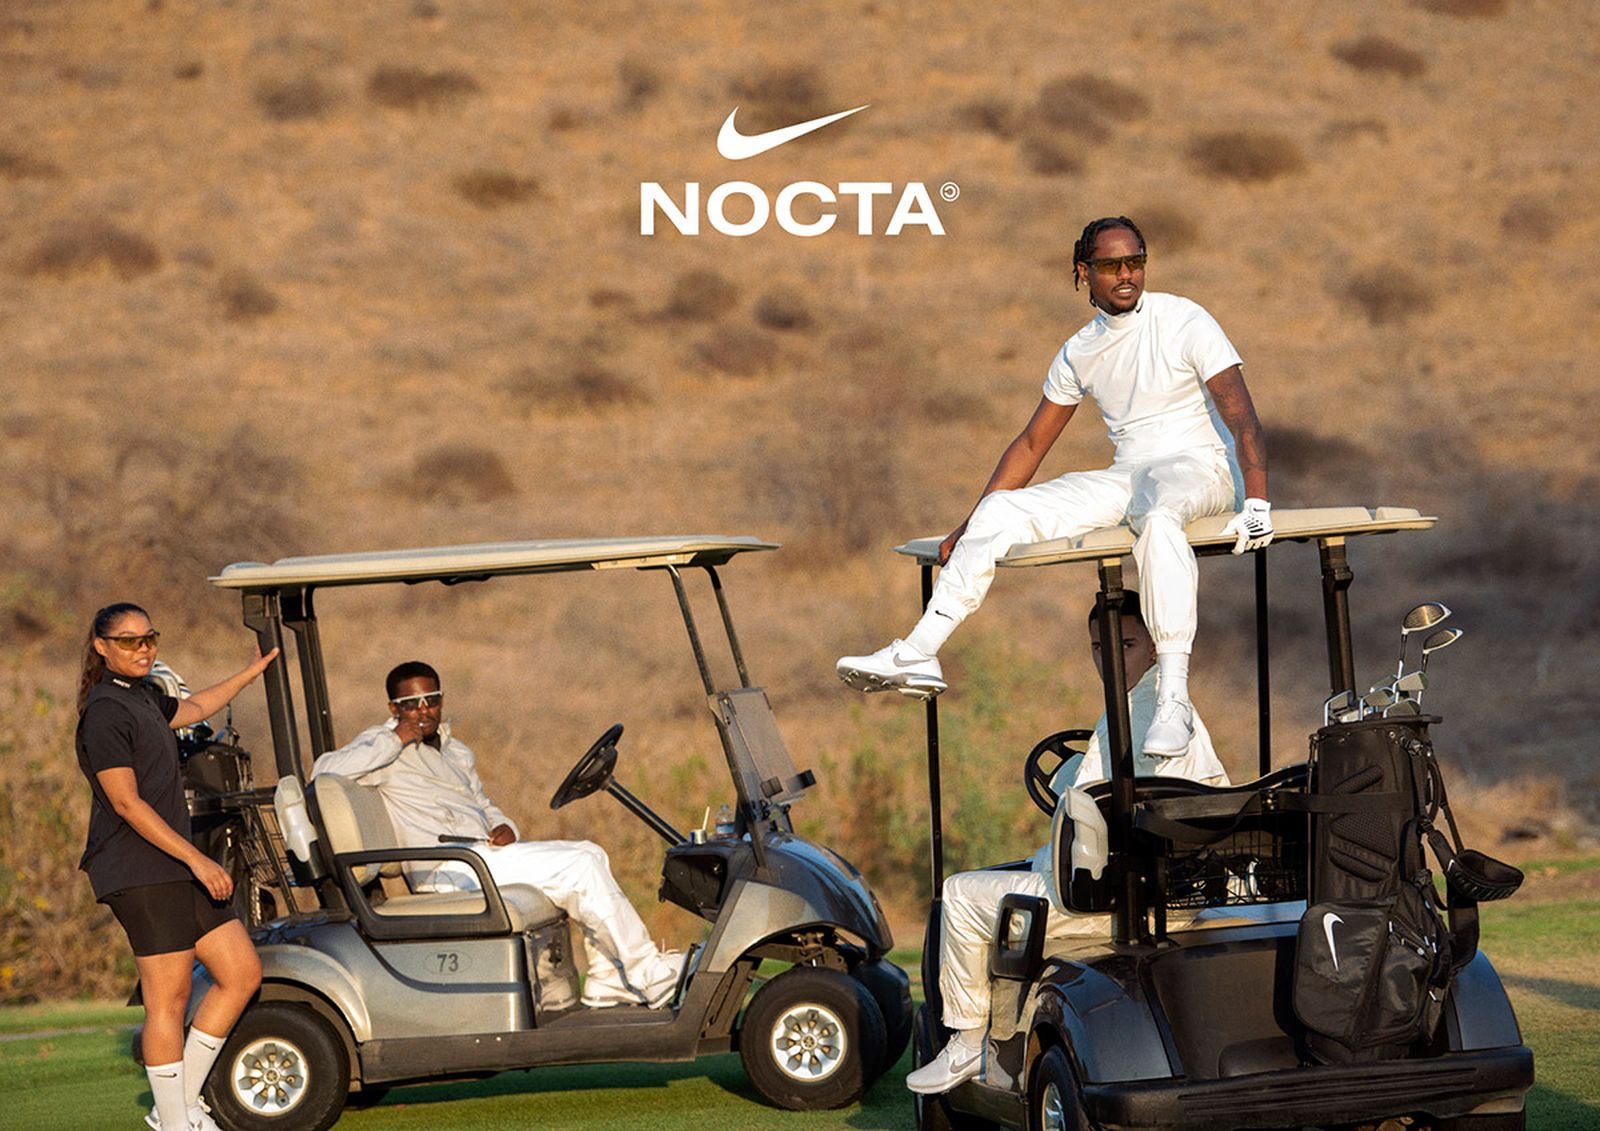 drake-nike-nocta-golf-collection-release-info-07